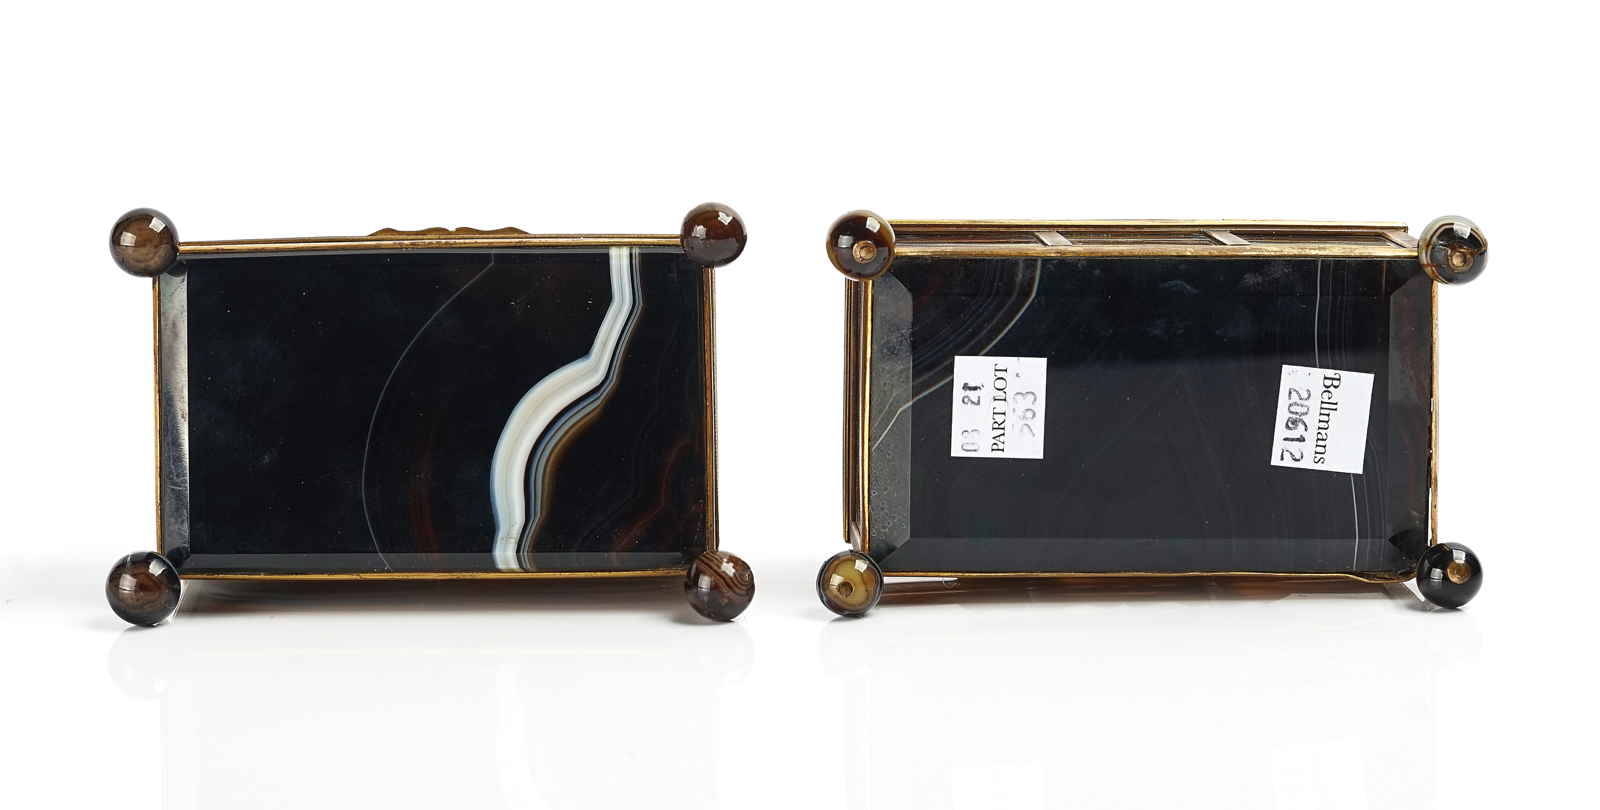 A VICTORIAN ROYAL PRESENTATION FRENCH ORMOLU MOUNTED AGATE CASKET AND ANOTHER SIMILAR - Image 4 of 5